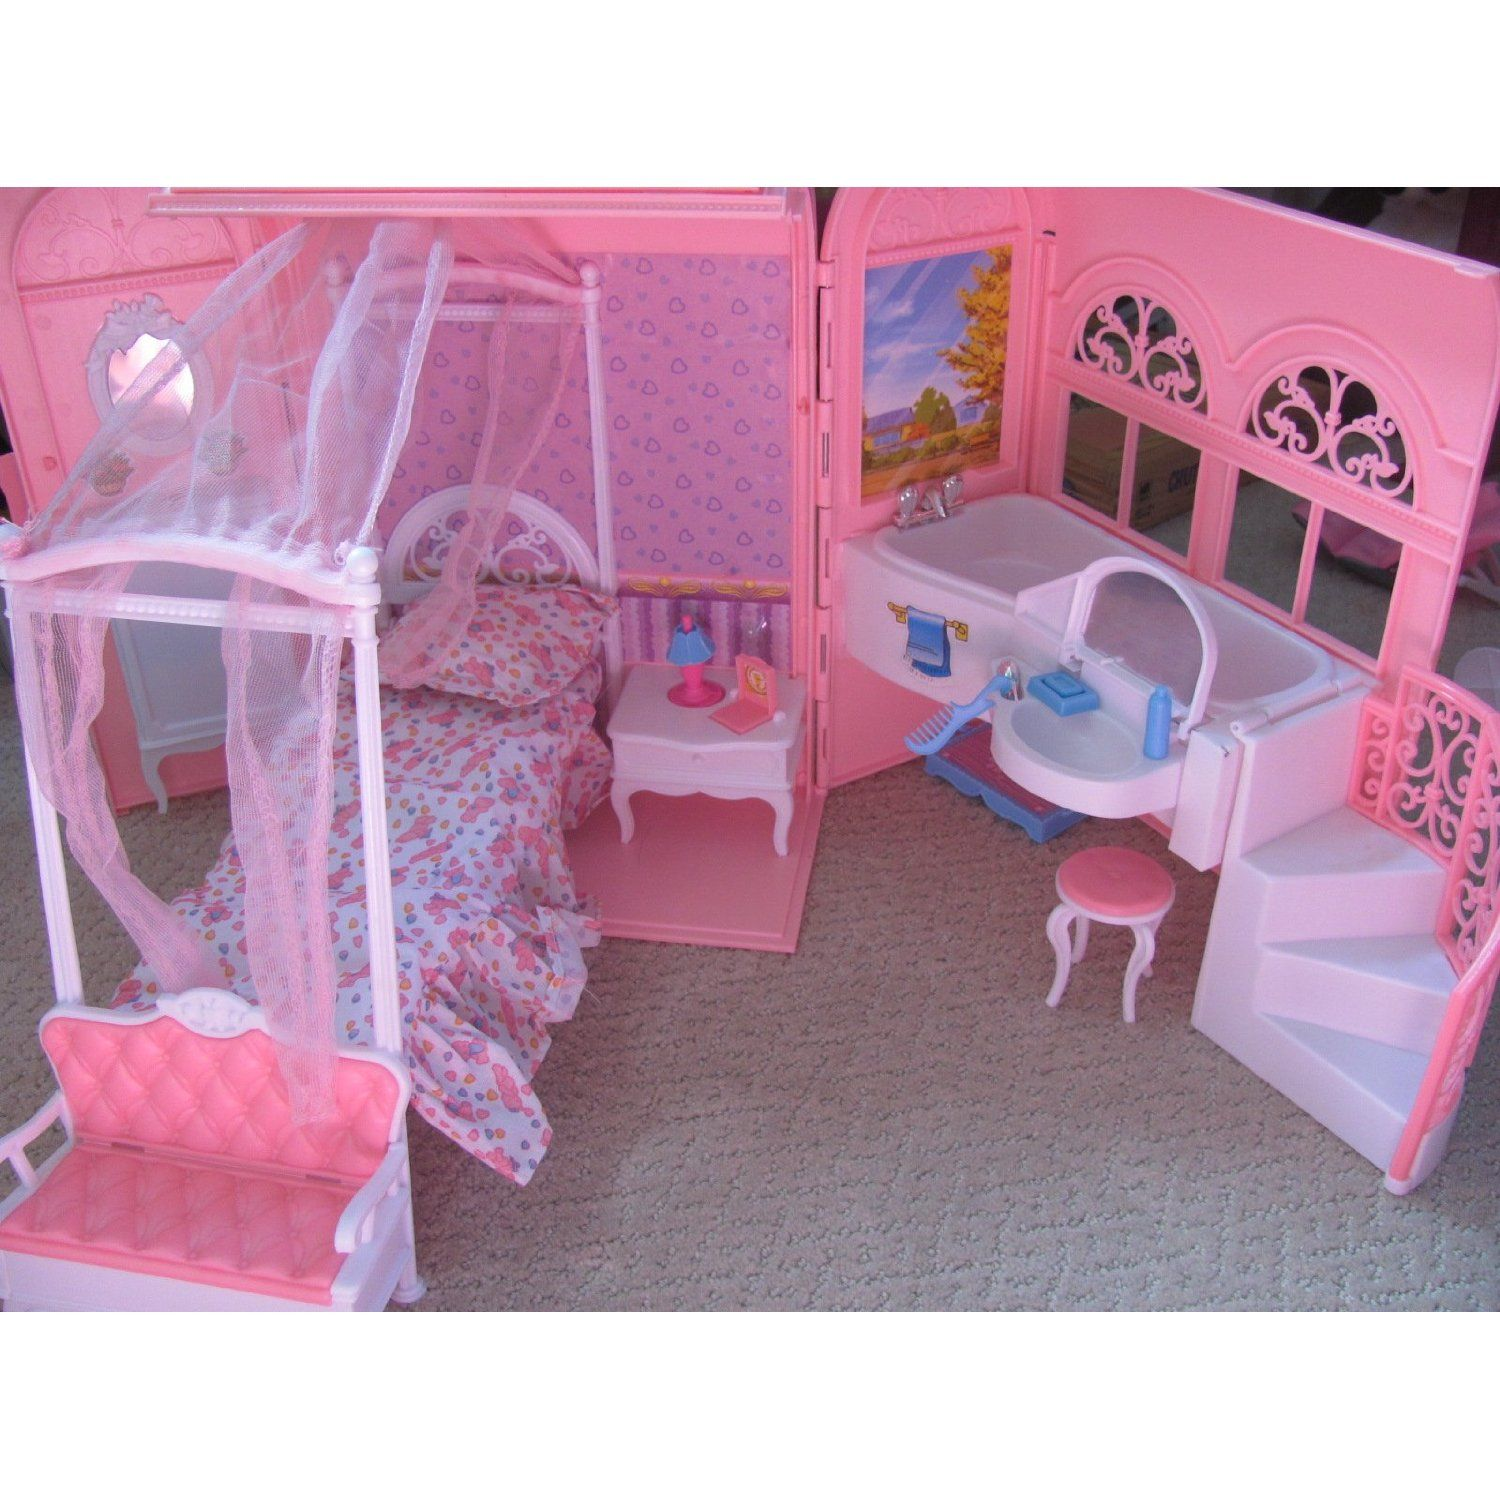 Amazon Barbie Size Dollhouse Furniture Bed & Bath Room in a